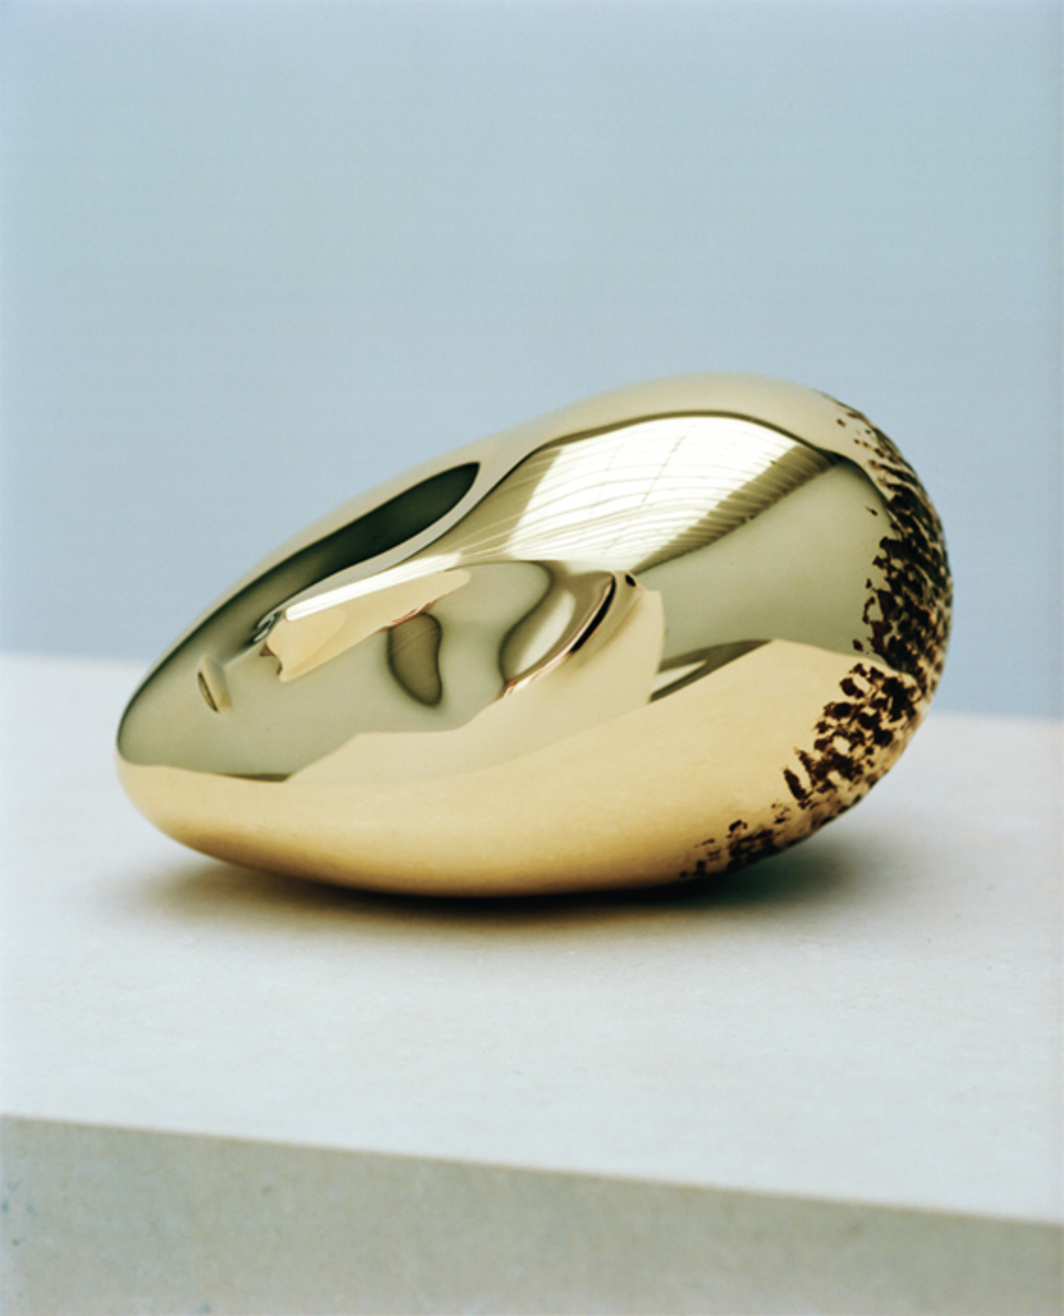 "Constantin Brancusi, La Muse Endormie II (Sleeping Muse II), 1923/2010, polished bronze, 6 5/8 x 11 3/8 x 6 7/8""."